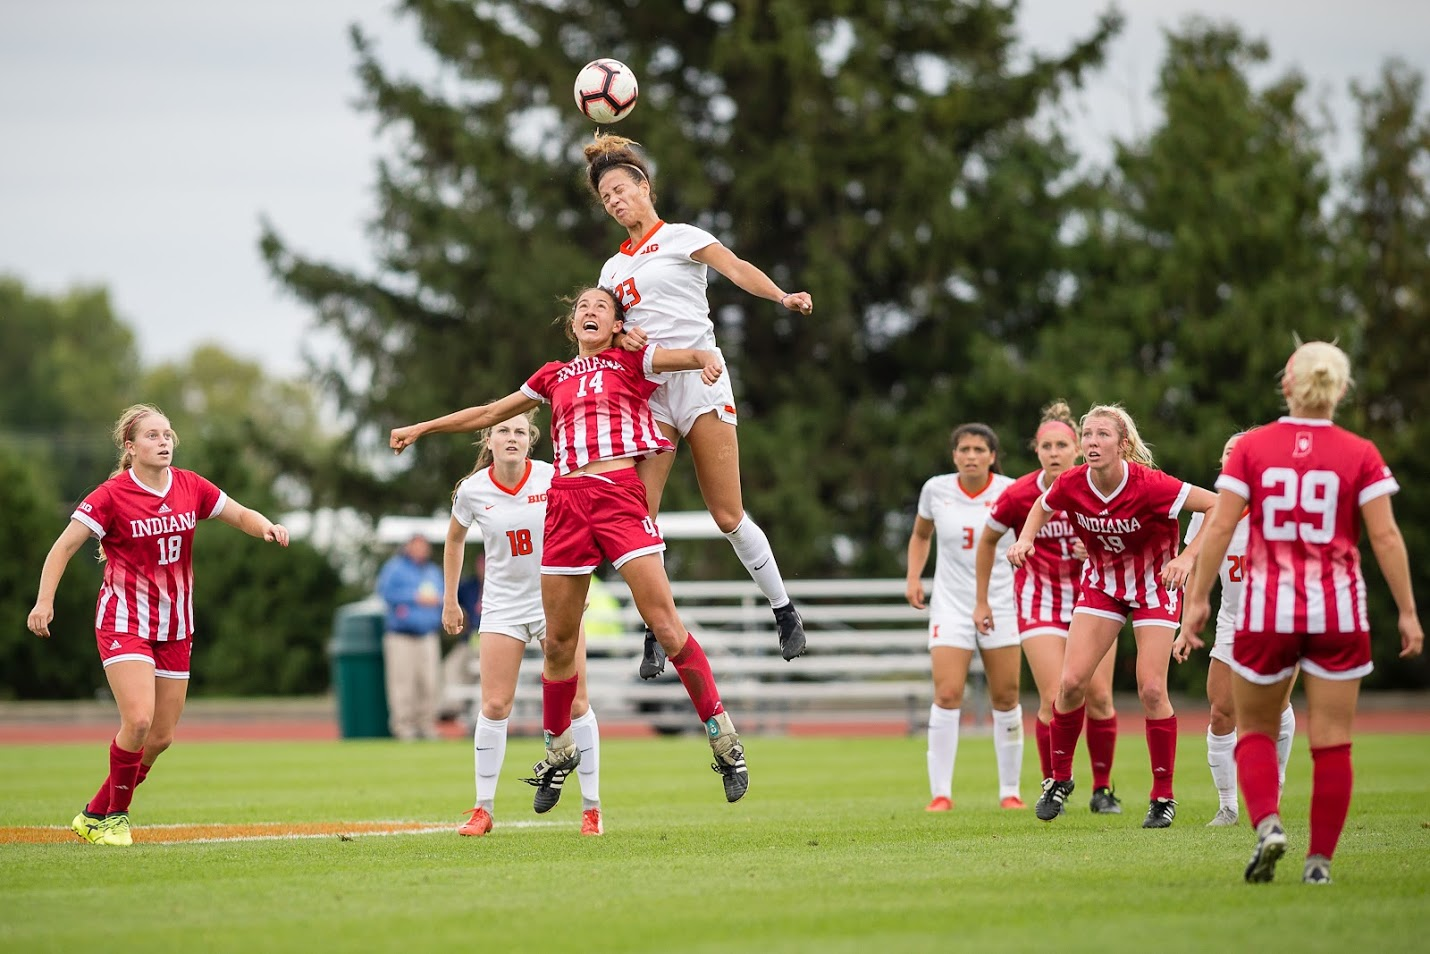 Illinois midfielder Arianna Veland (23) heads the ball during the game against Indiana at the Illinois Soccer Stadium on Sunday, Oct. 14, 2018. The Illini won 1-0 in double overtime.